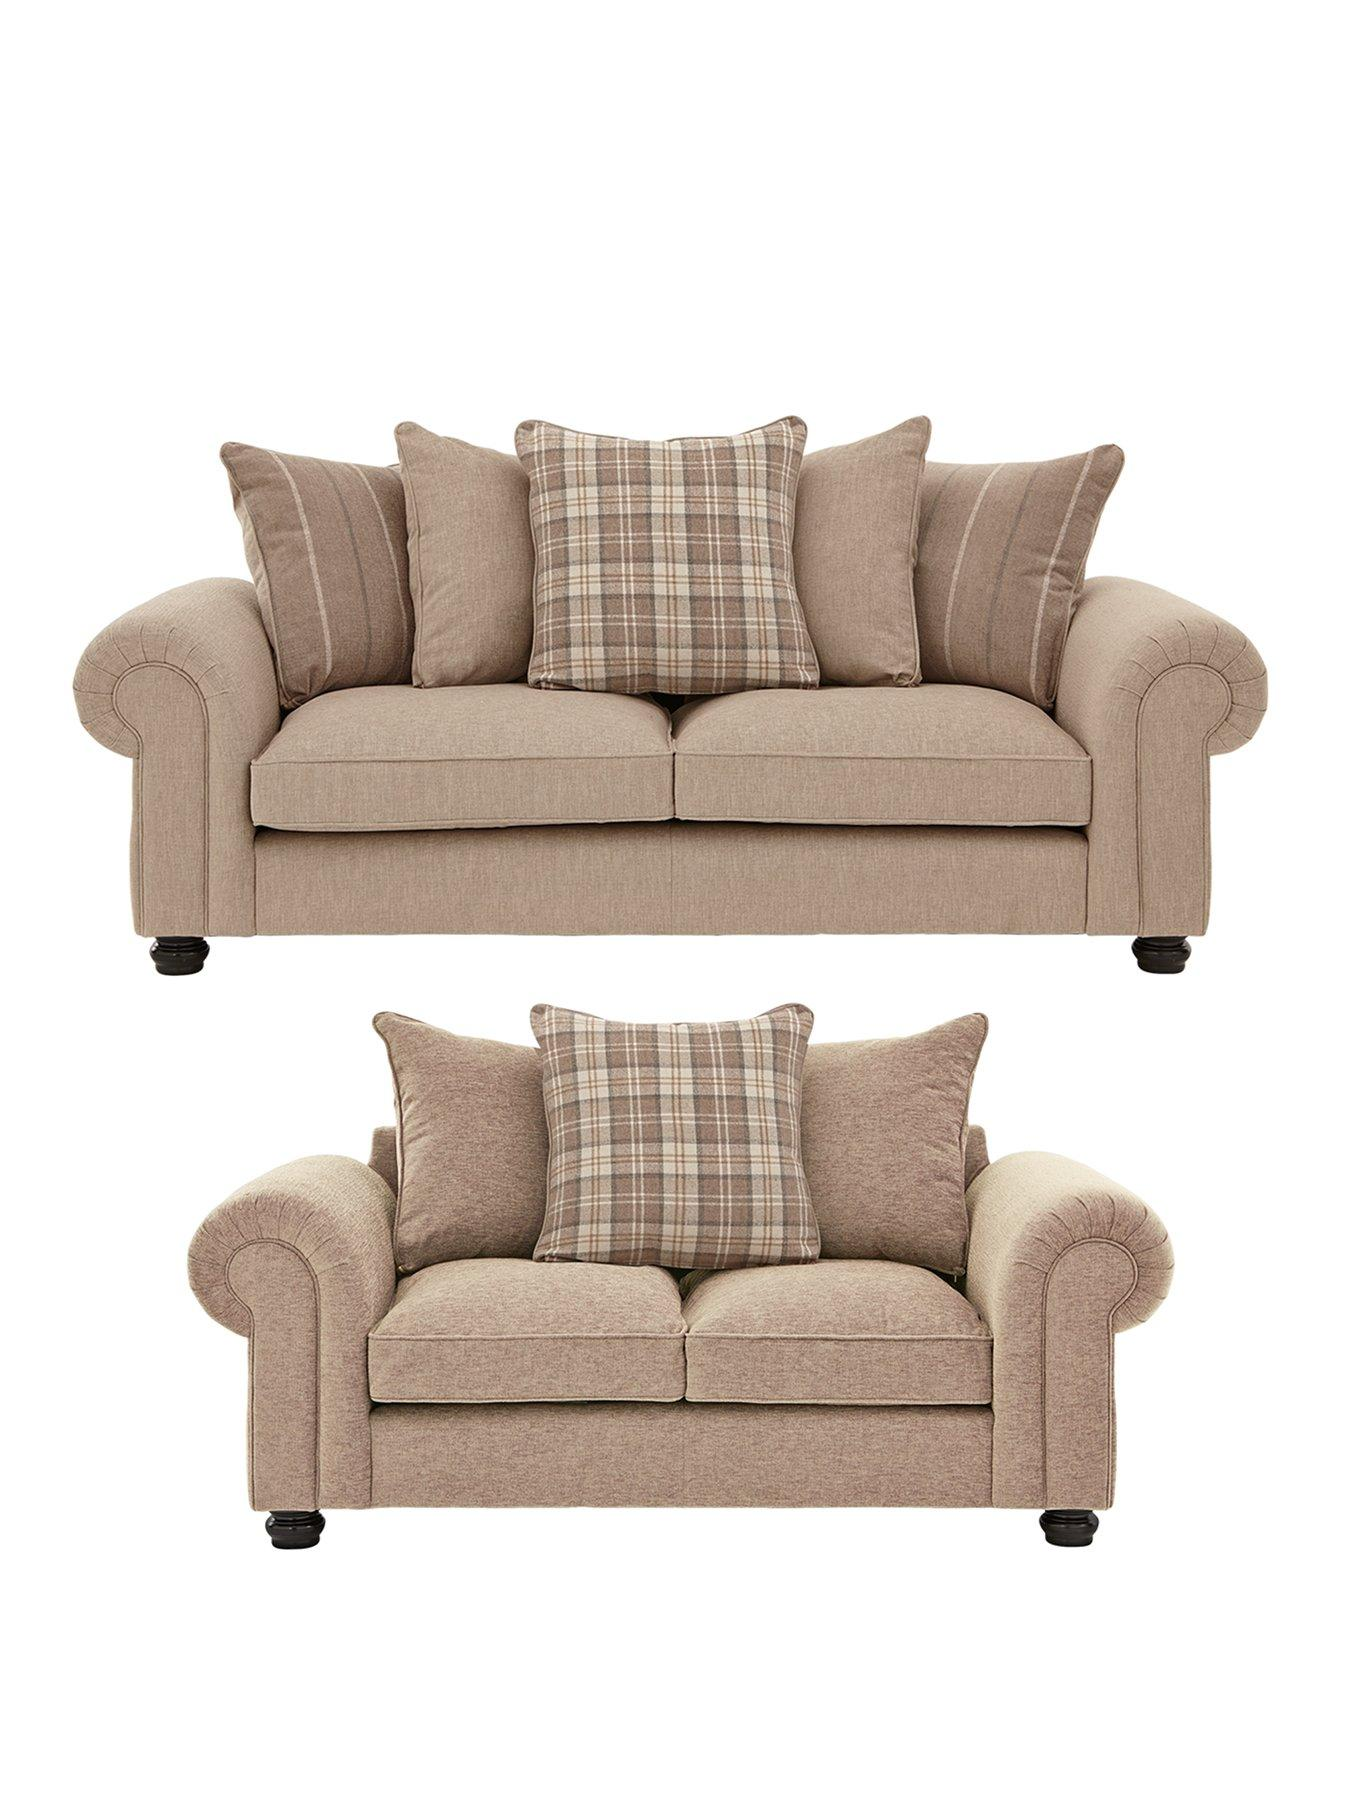 Charmant Ideal Home Orkney 3 Seater + 2 Seater Fabric Sofa Set (Buy And SAVE!)